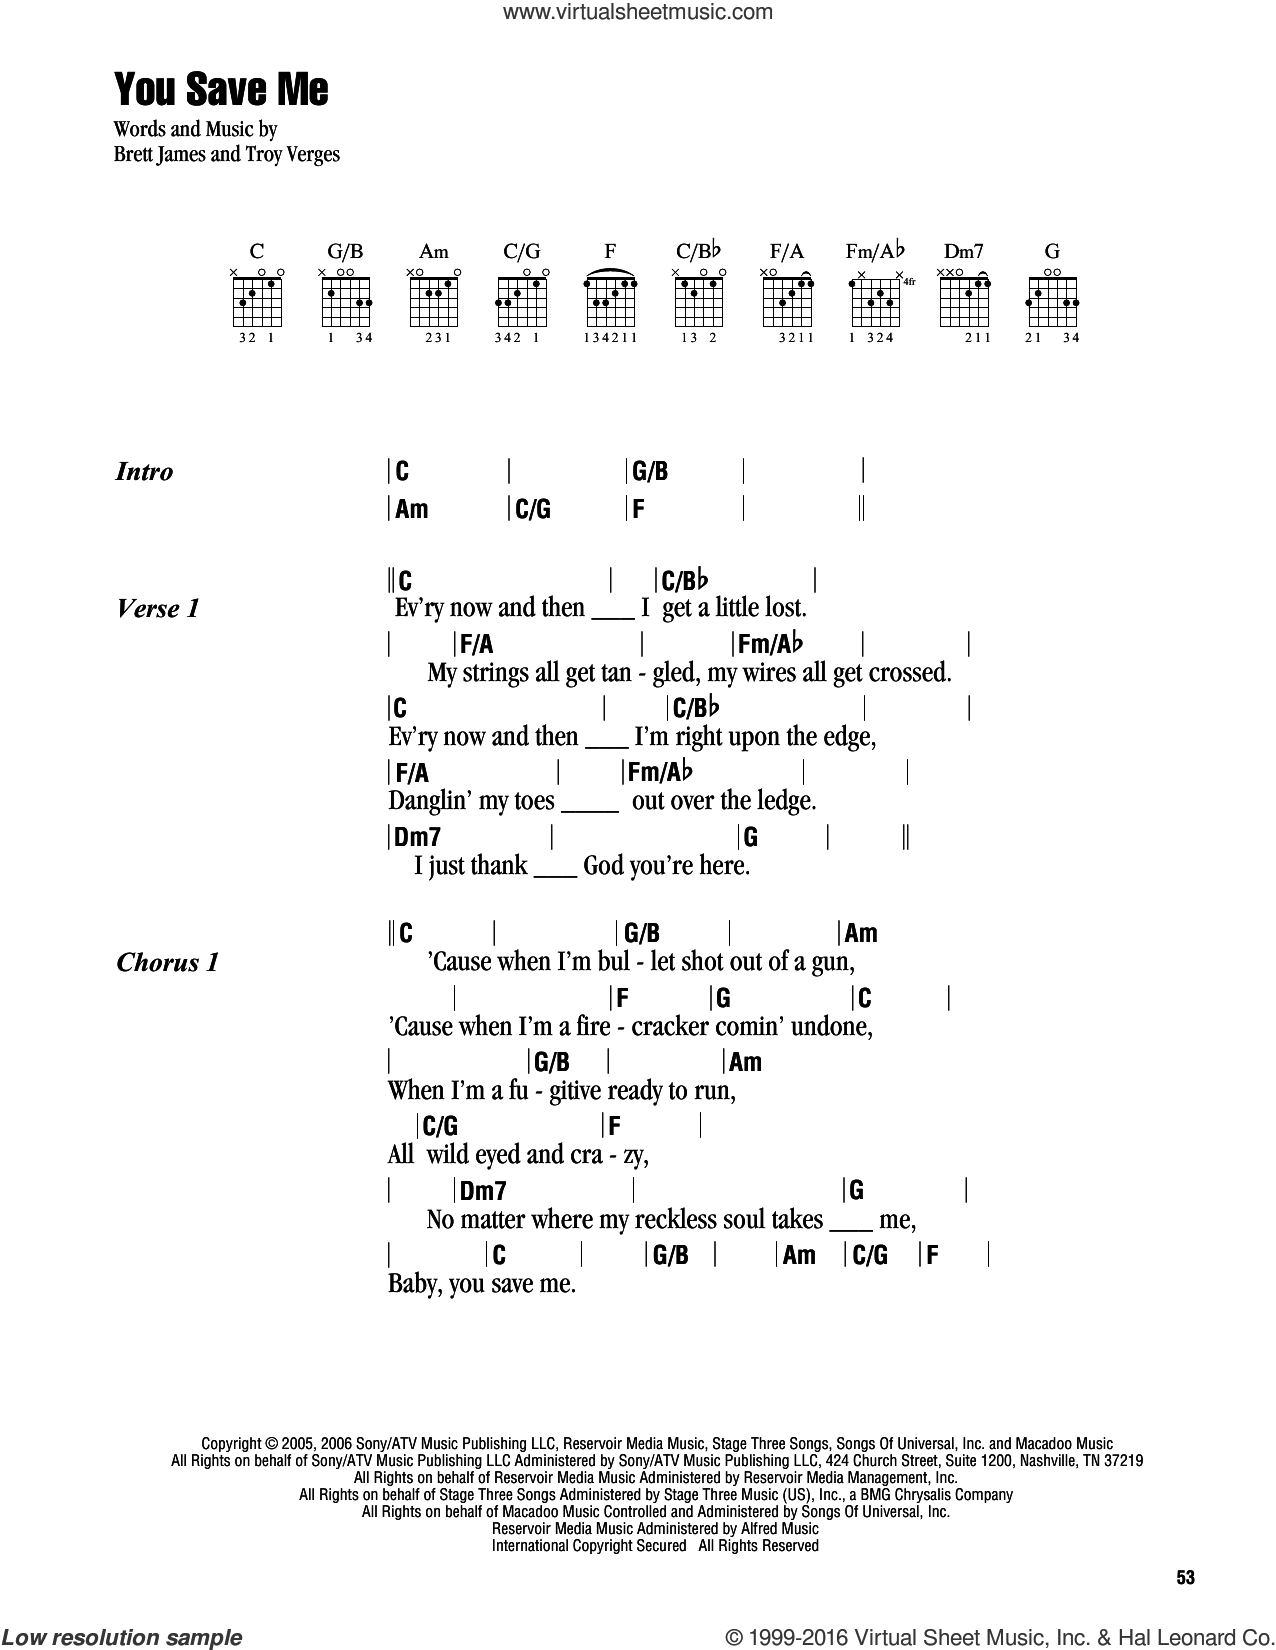 You Save Me sheet music for guitar (chords) by Troy Verges, Kenny Chesney and Brett James. Score Image Preview.